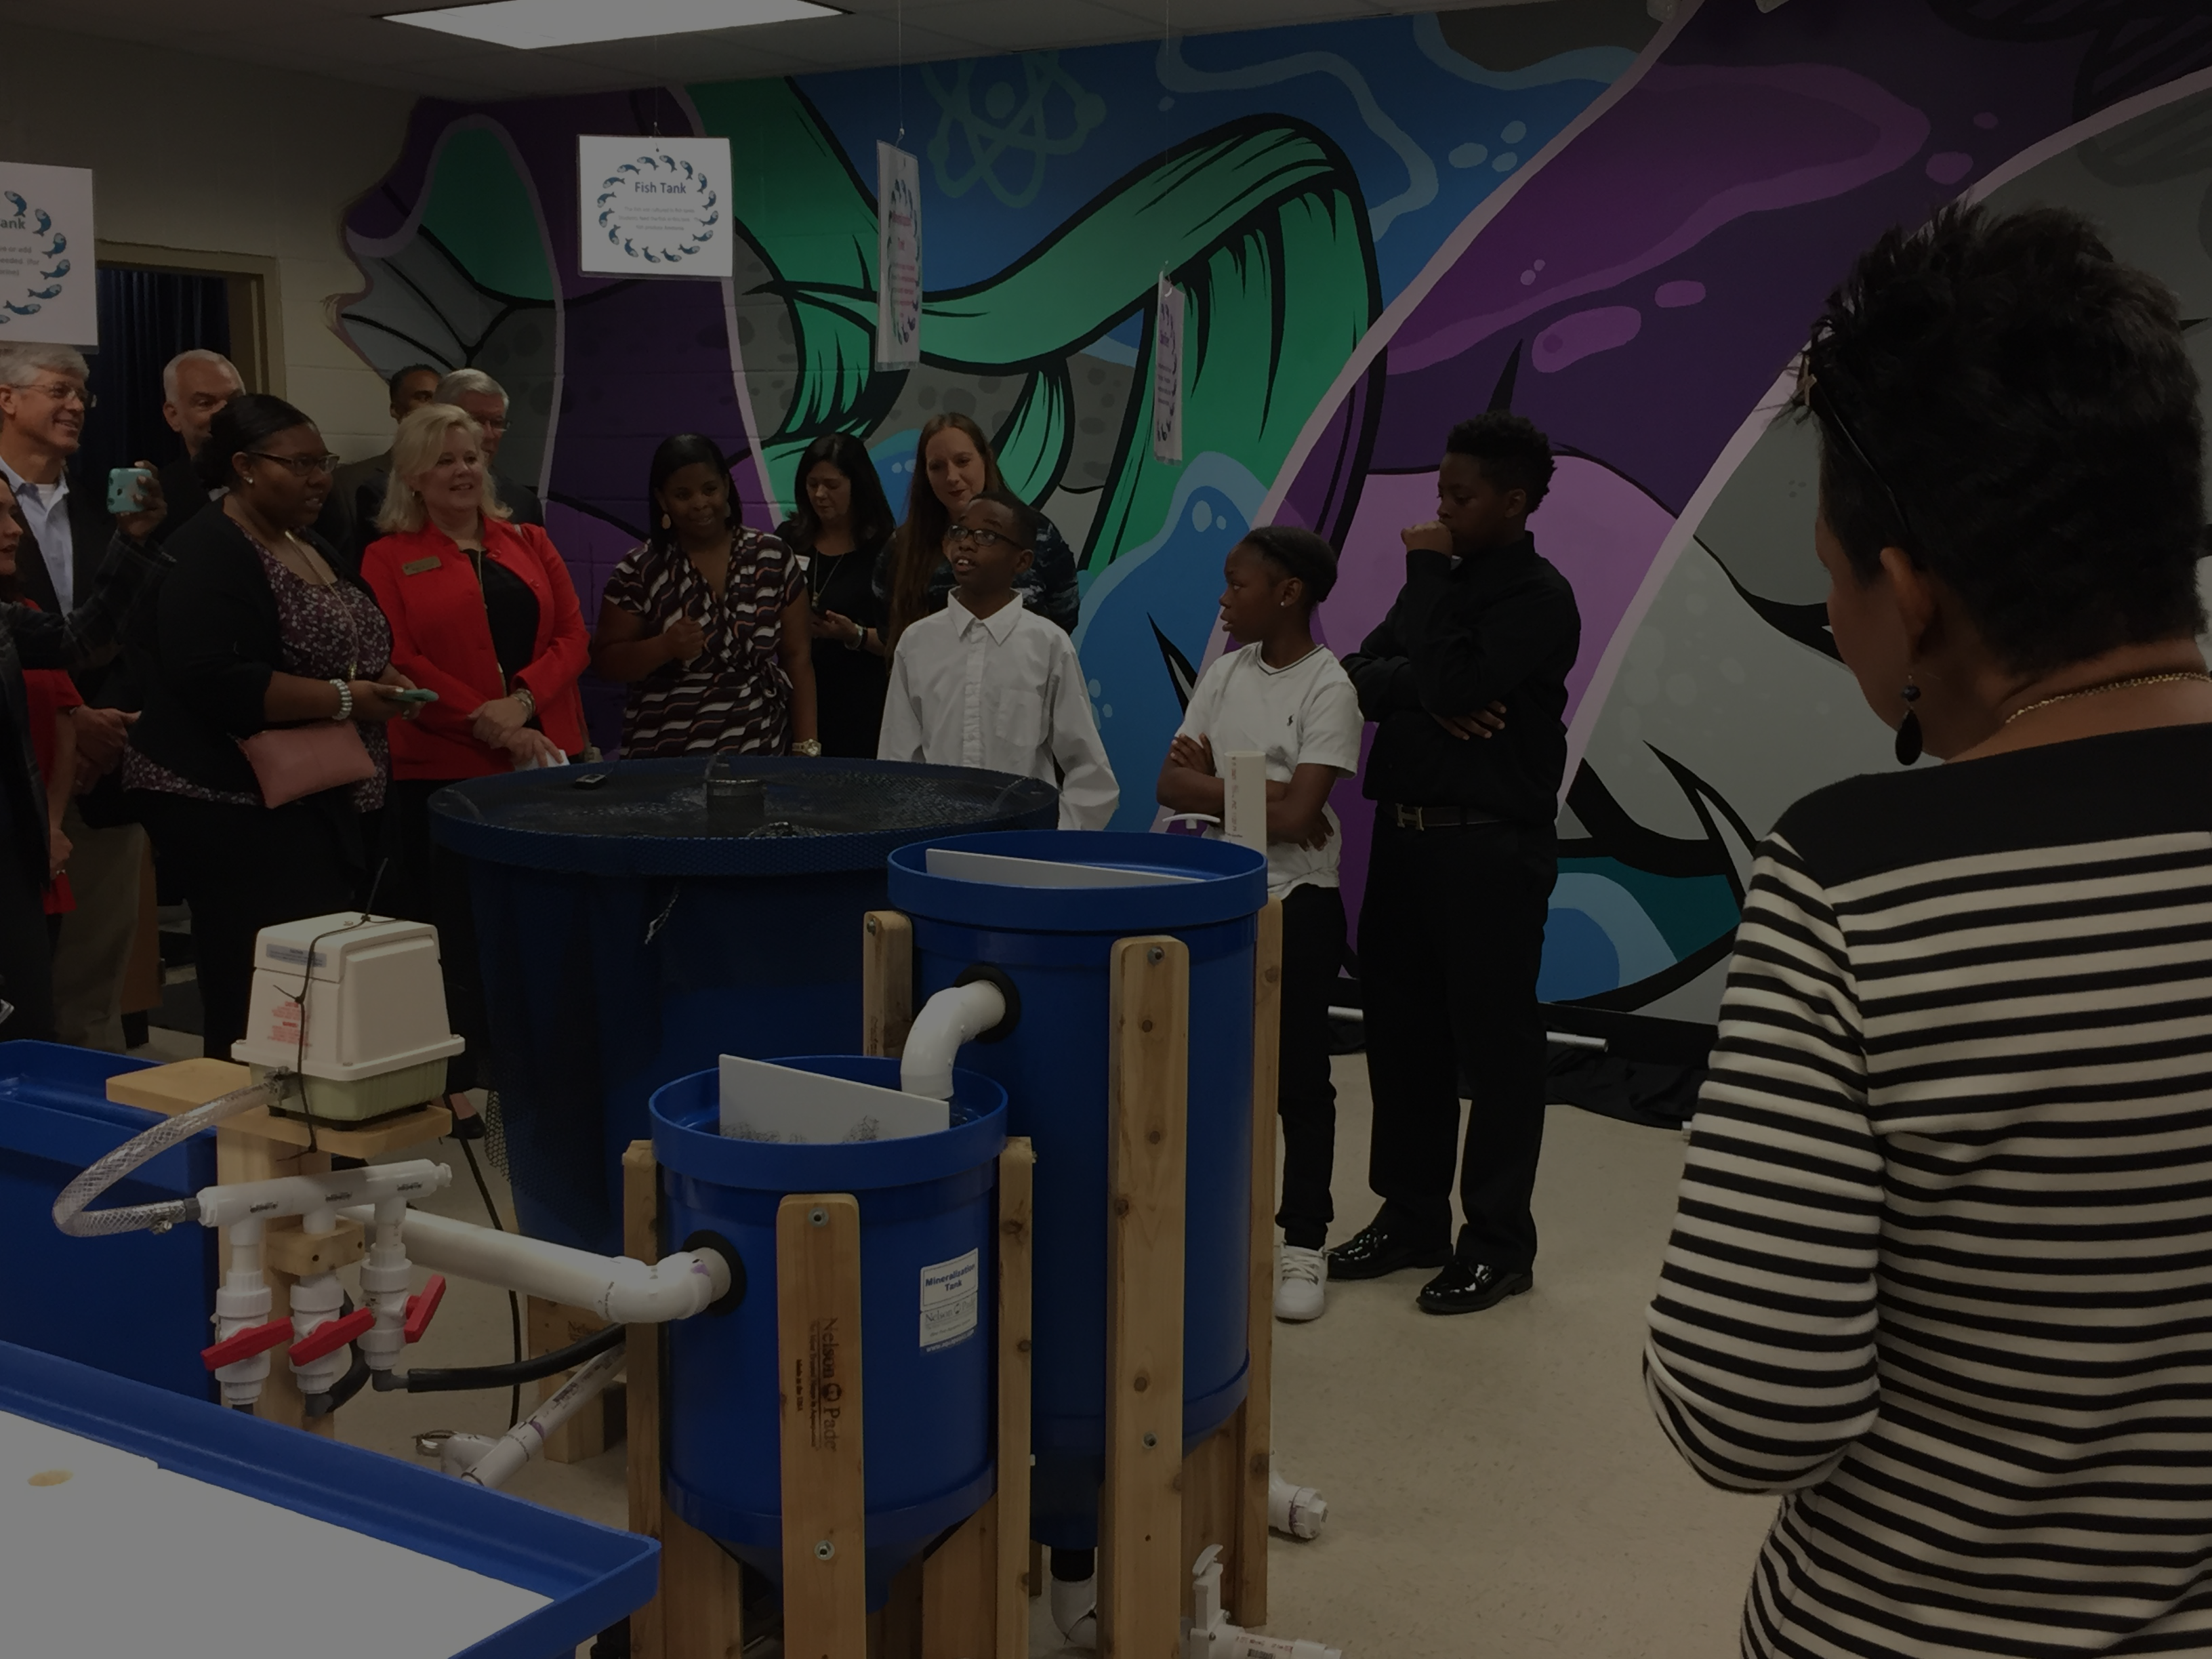 ExxonMobil Allocates $300,000 to Support Education and Reveals New Aquaponics Lab at Brookstown Middle School